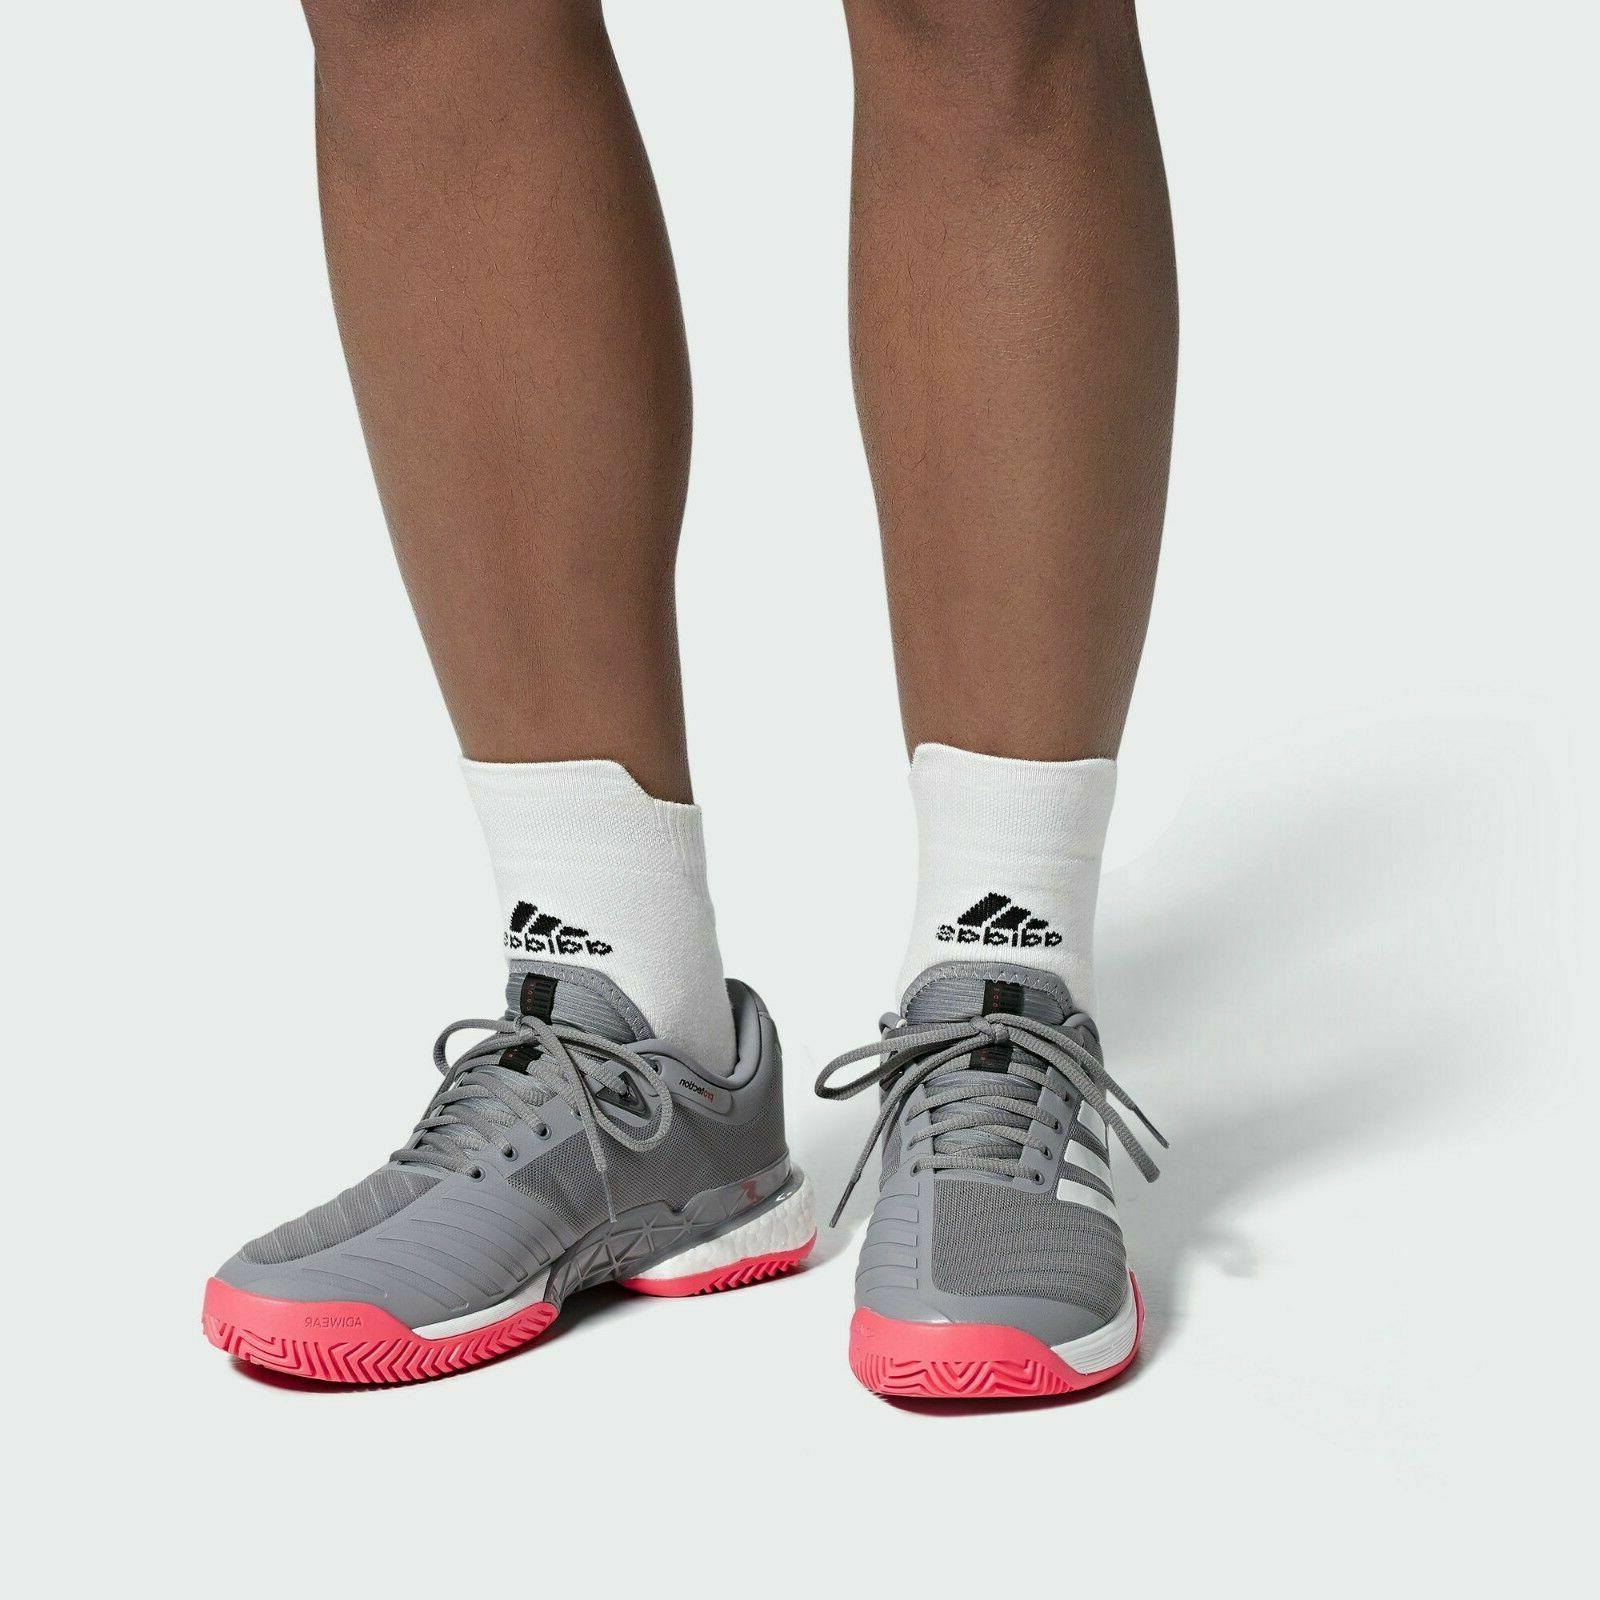 Boost AH2094 Tennis Shoes